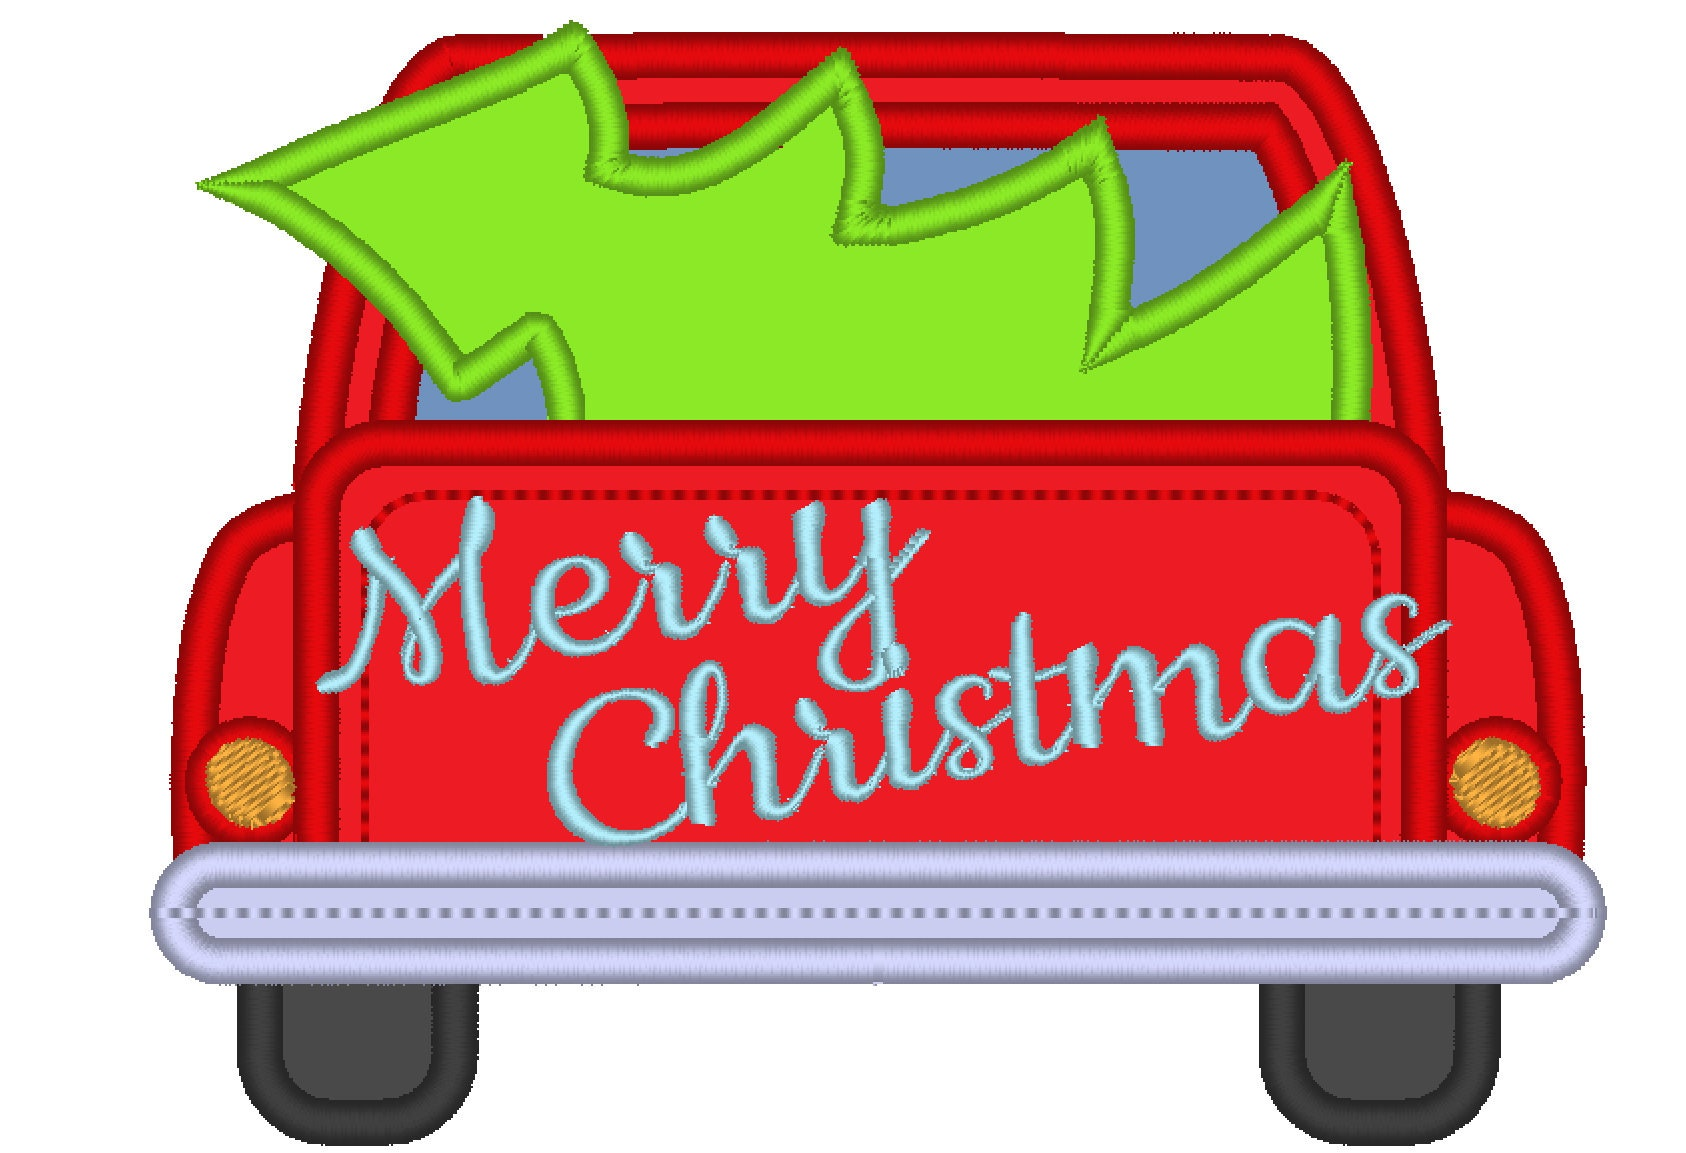 Merry Christmas Station Wagon With Christmas Tree Red Truck With Christmas Tree In The Back Vintage Machine Embroidery Applique Designs